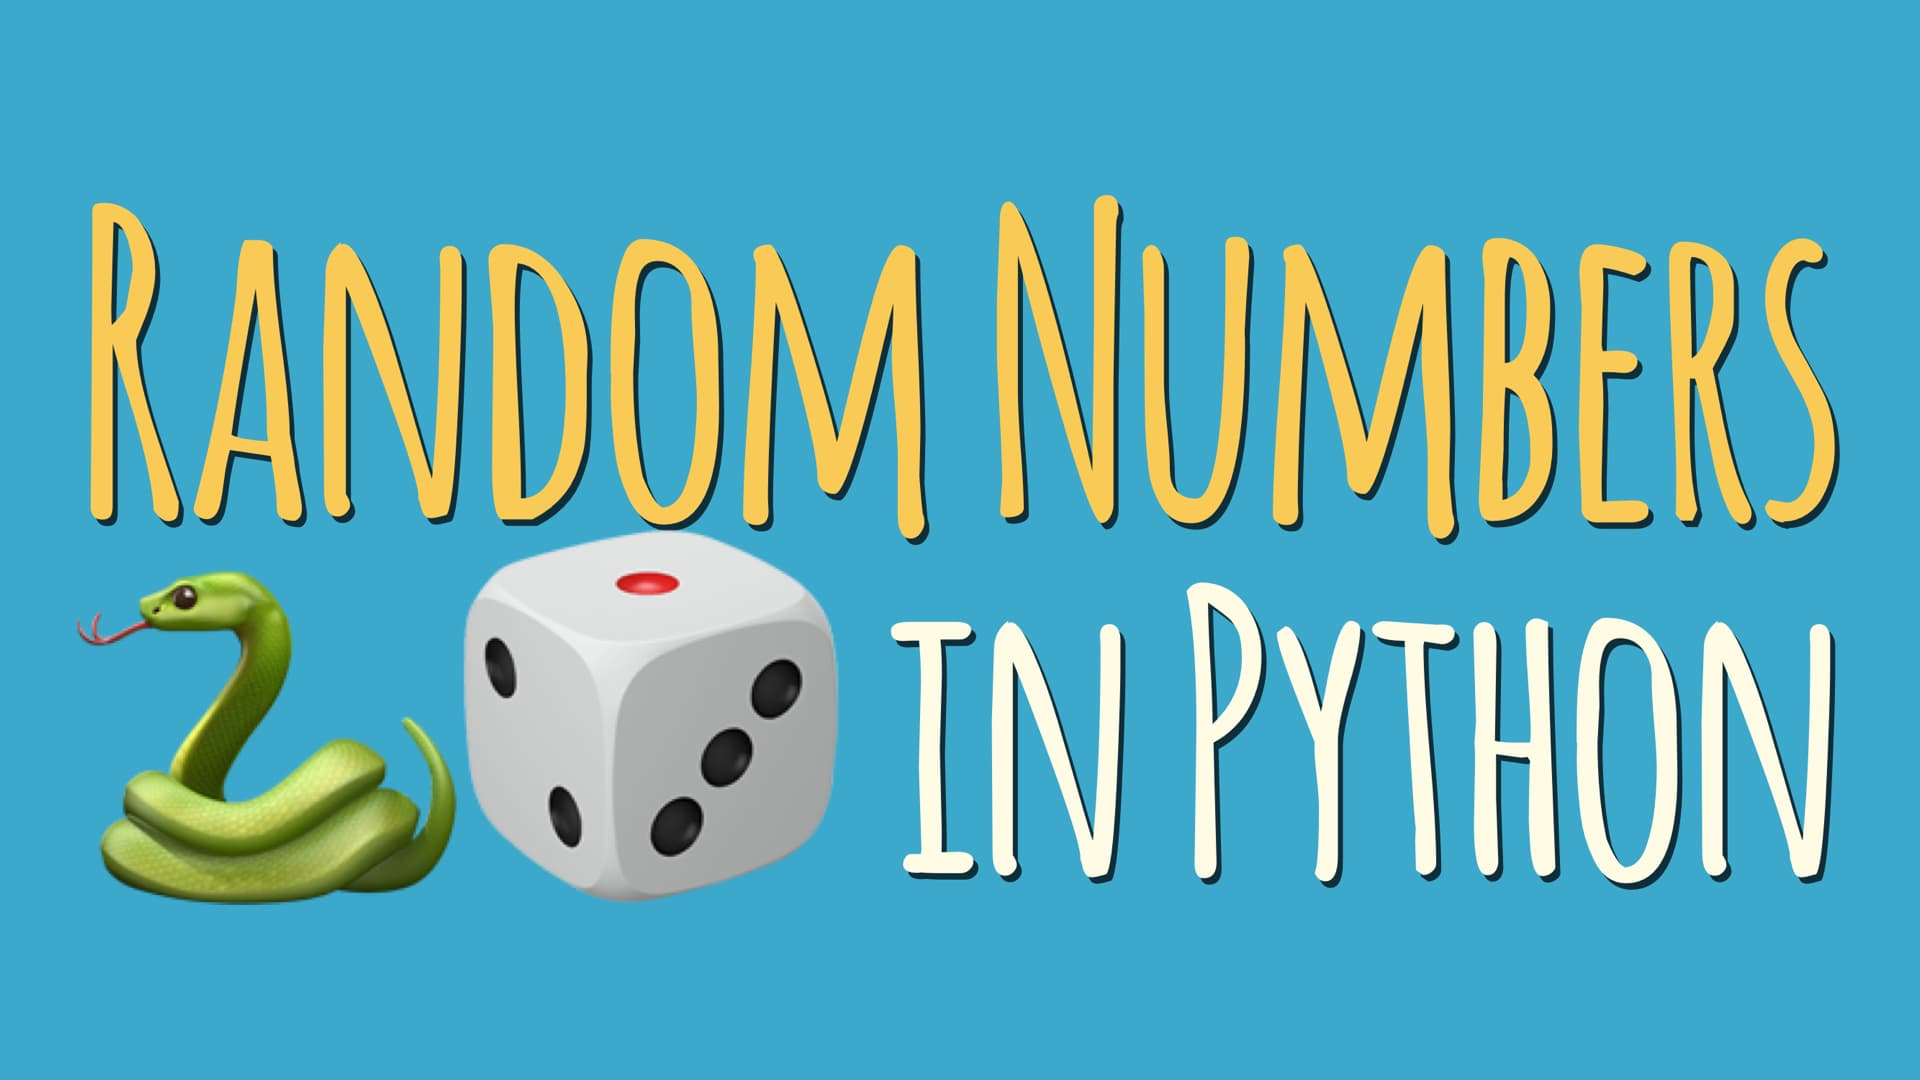 Working with Random Numbers in Python